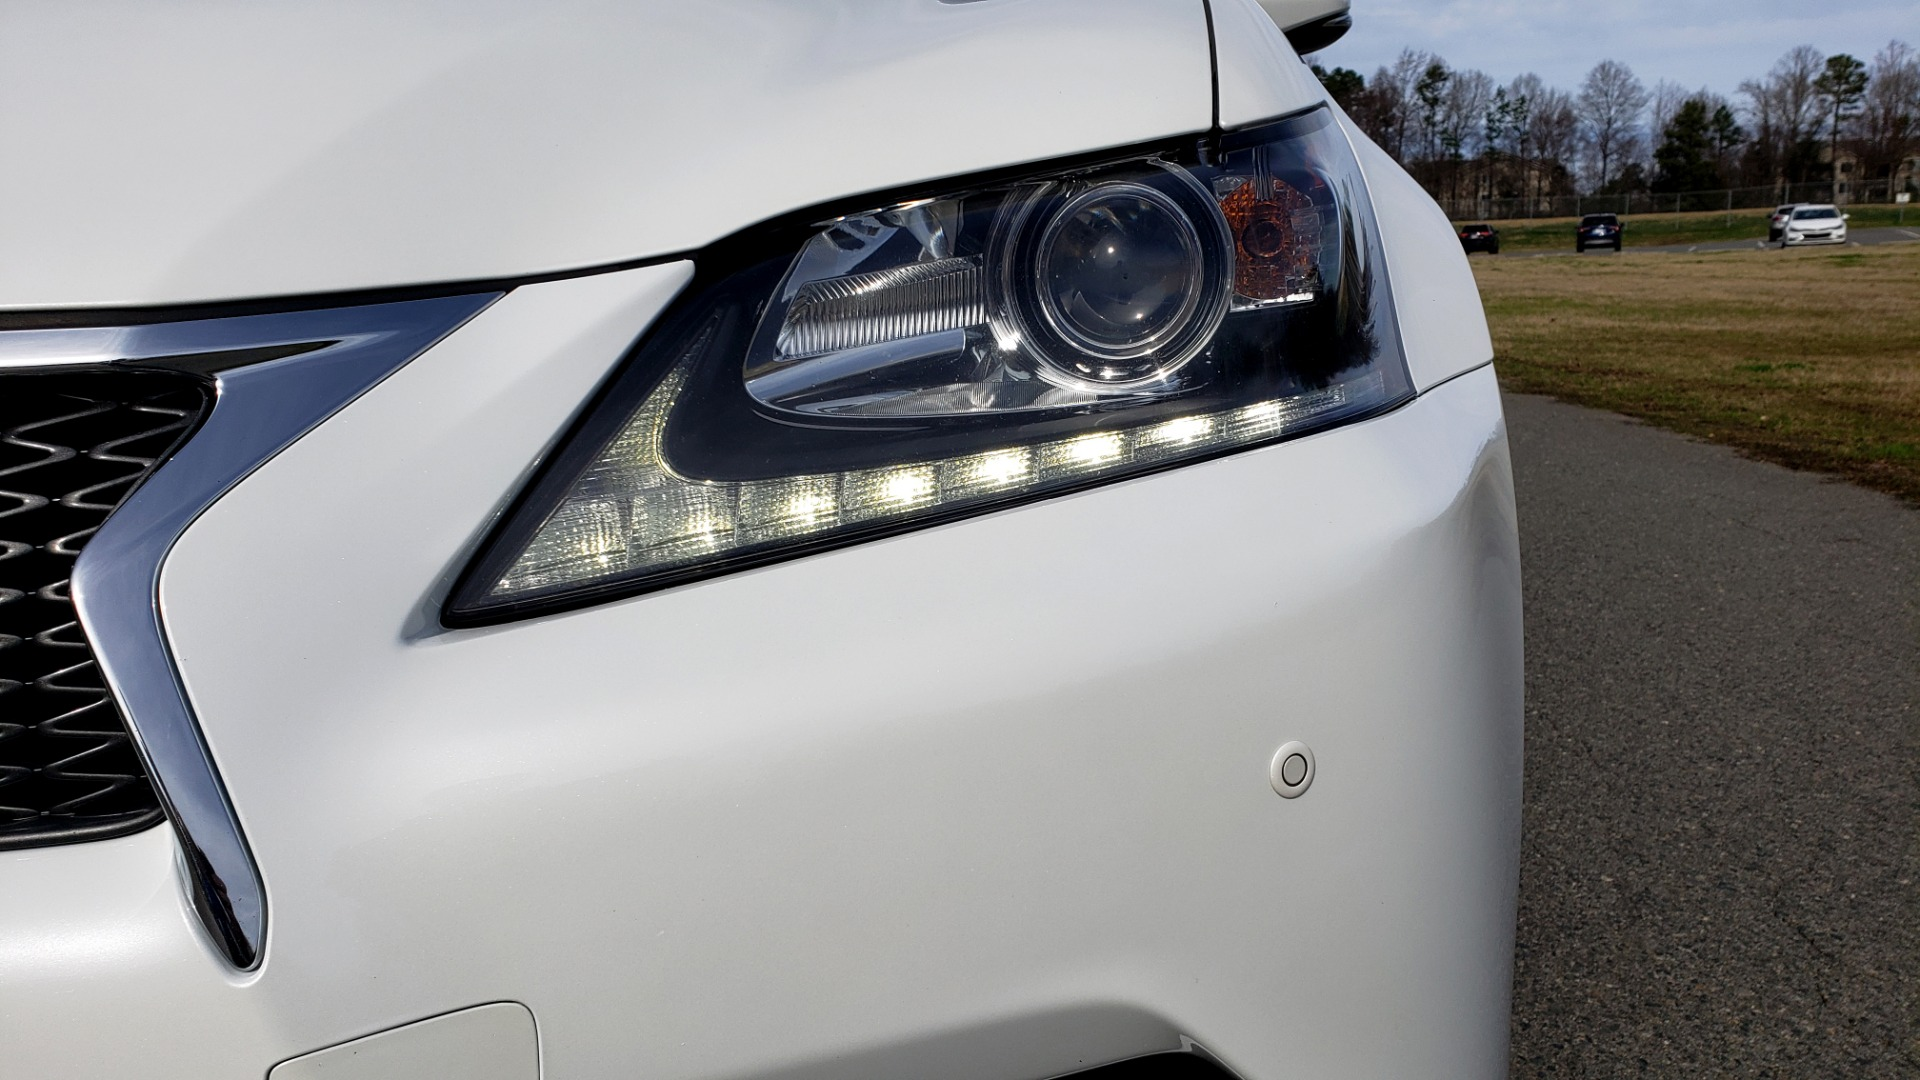 Used 2013 Lexus GS 350 F-SPORT / NAV / SUNROOF / BSM / PRK ASST / REARVIEW for sale Sold at Formula Imports in Charlotte NC 28227 18